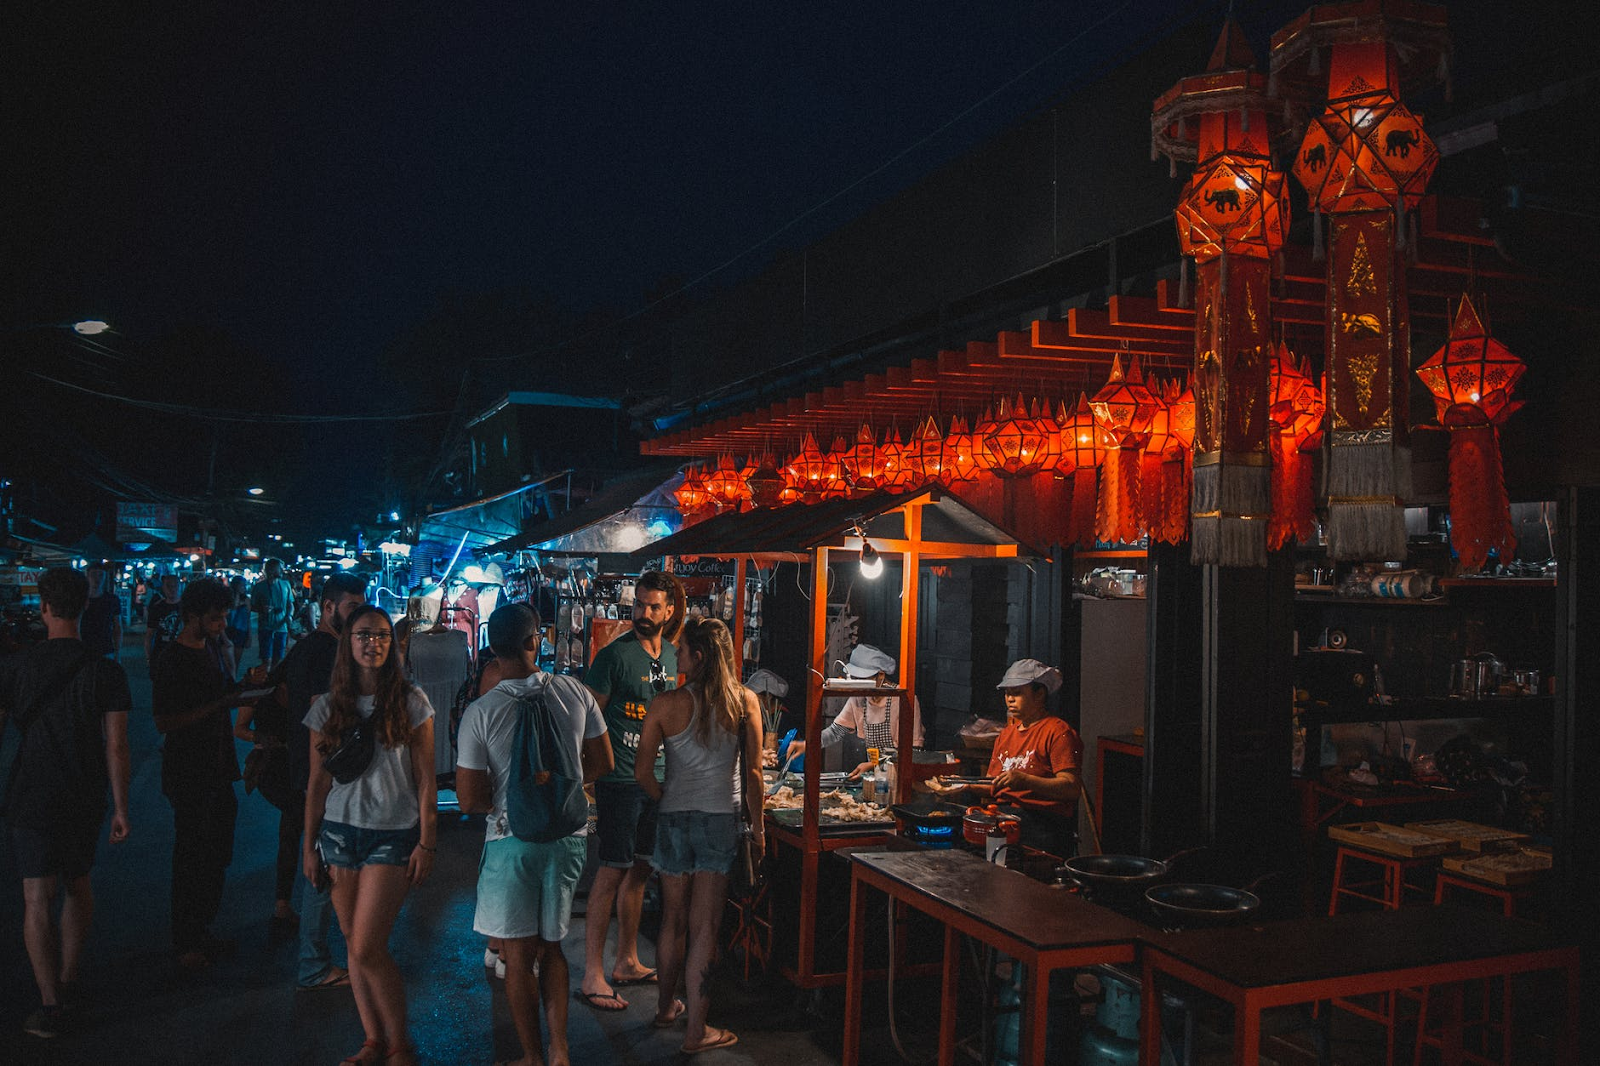 Tourists shopping at a night market in Koh Samui. There are various stalls selling food and souvenirs.